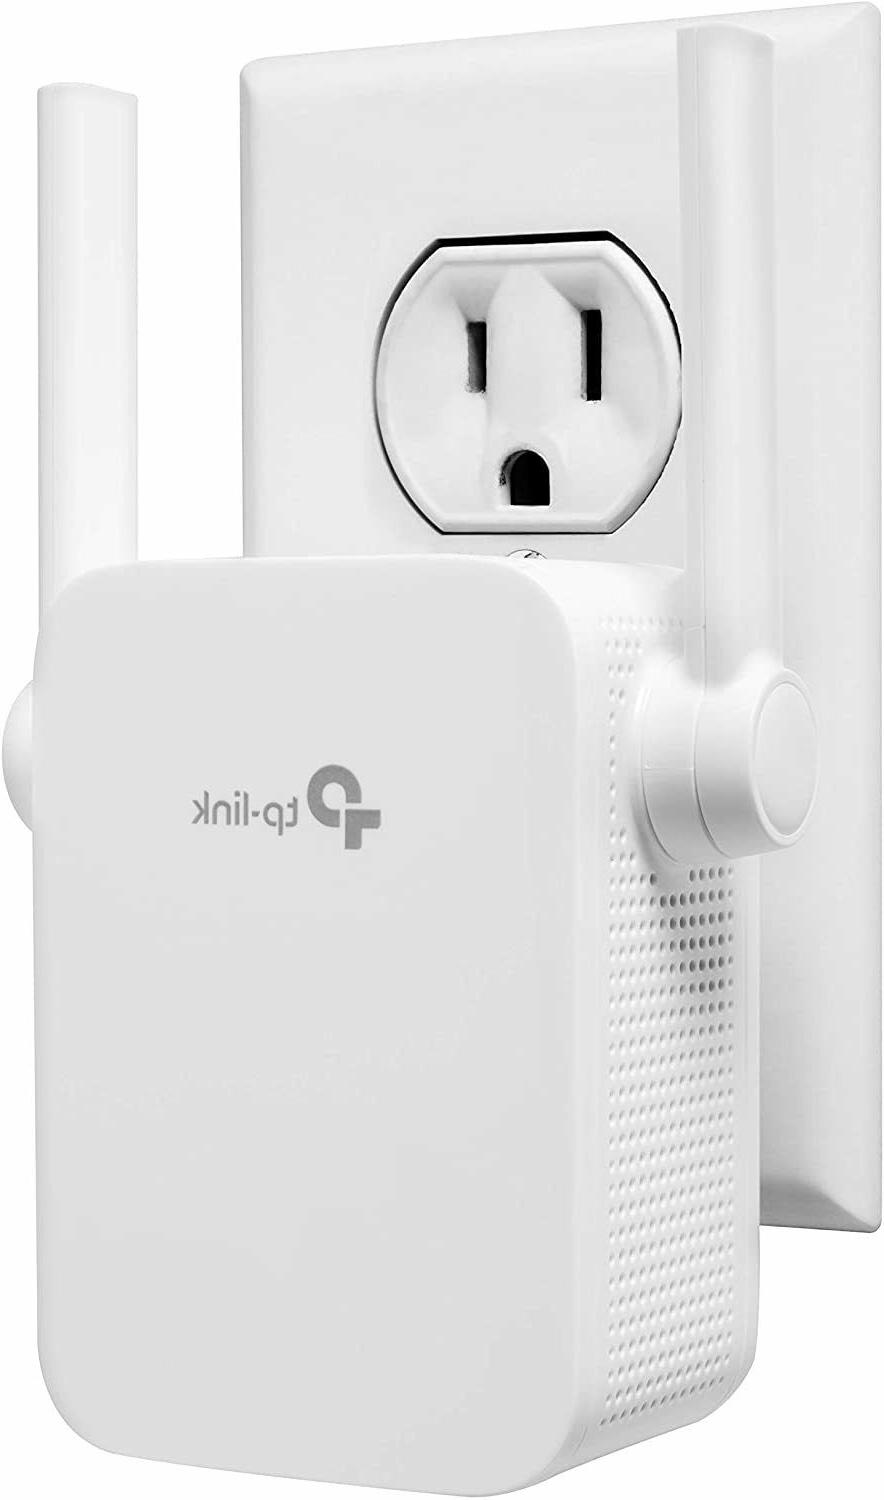 TP-Link N300 WiFi Extender 300Mbps Wireless Signal Booster A